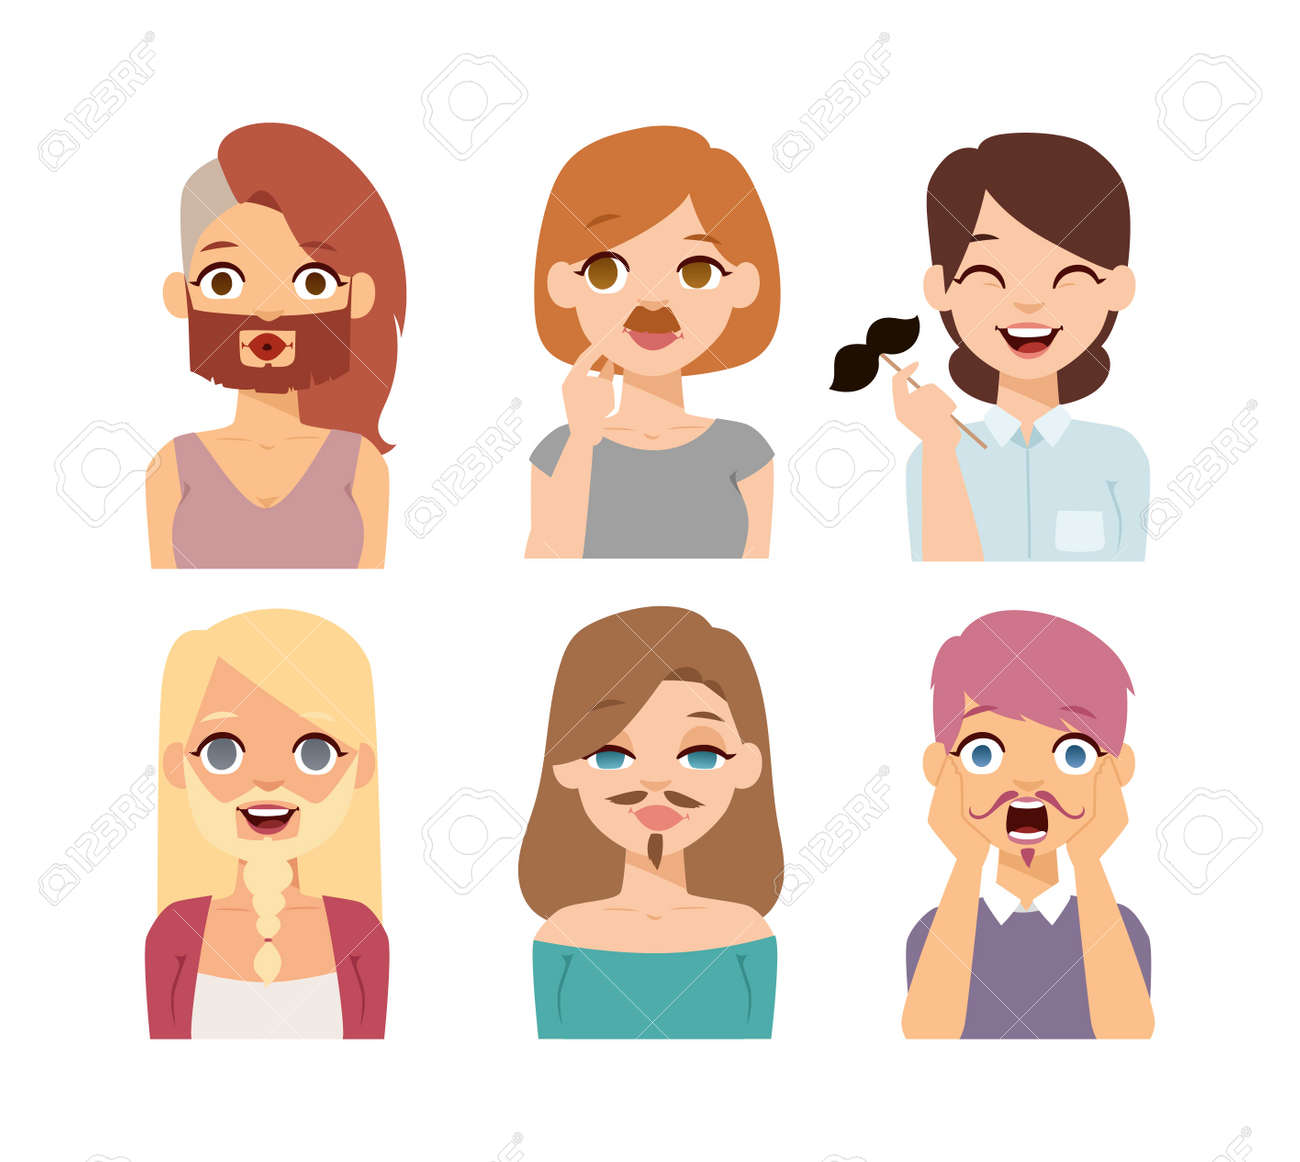 Girl Emotion Faces Cartoon Vector Illustration Beard And Mustaches